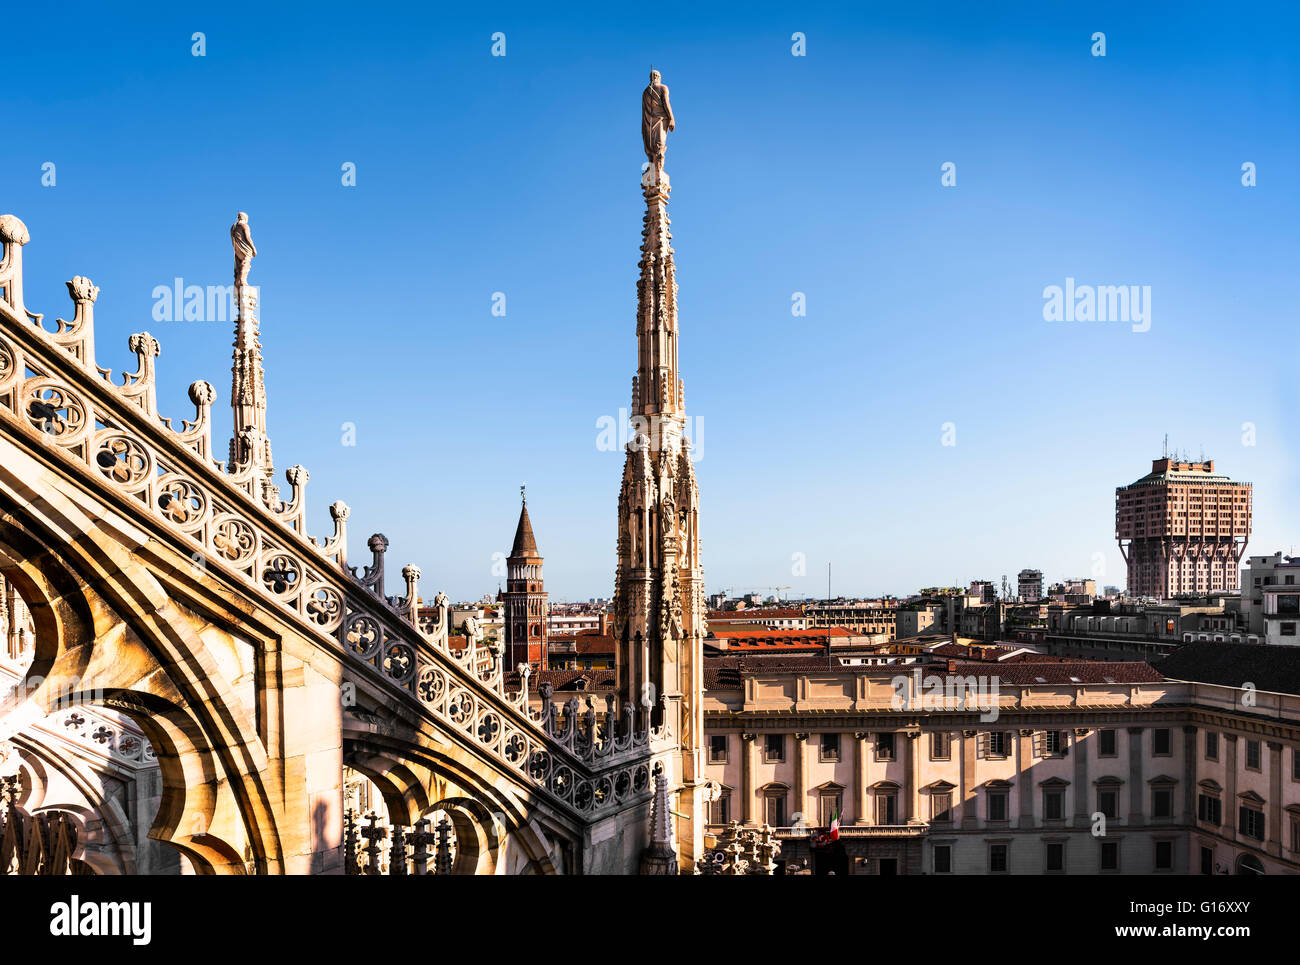 White marble statues on the roof of famous Cathedral Duomo di Milano on piazza in Milan, Italy - Stock Image